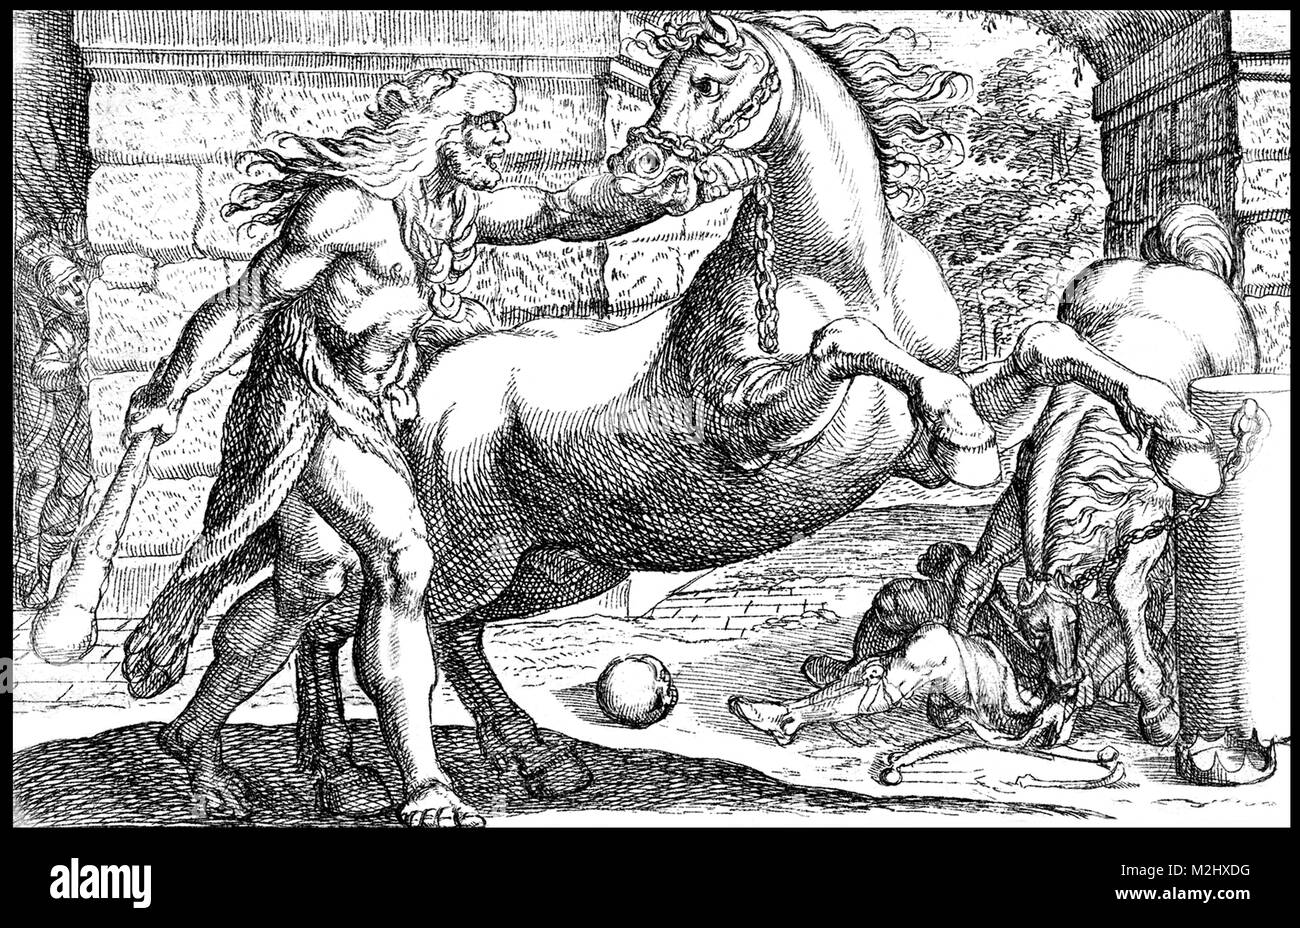 Image result for Mares of Diomedes